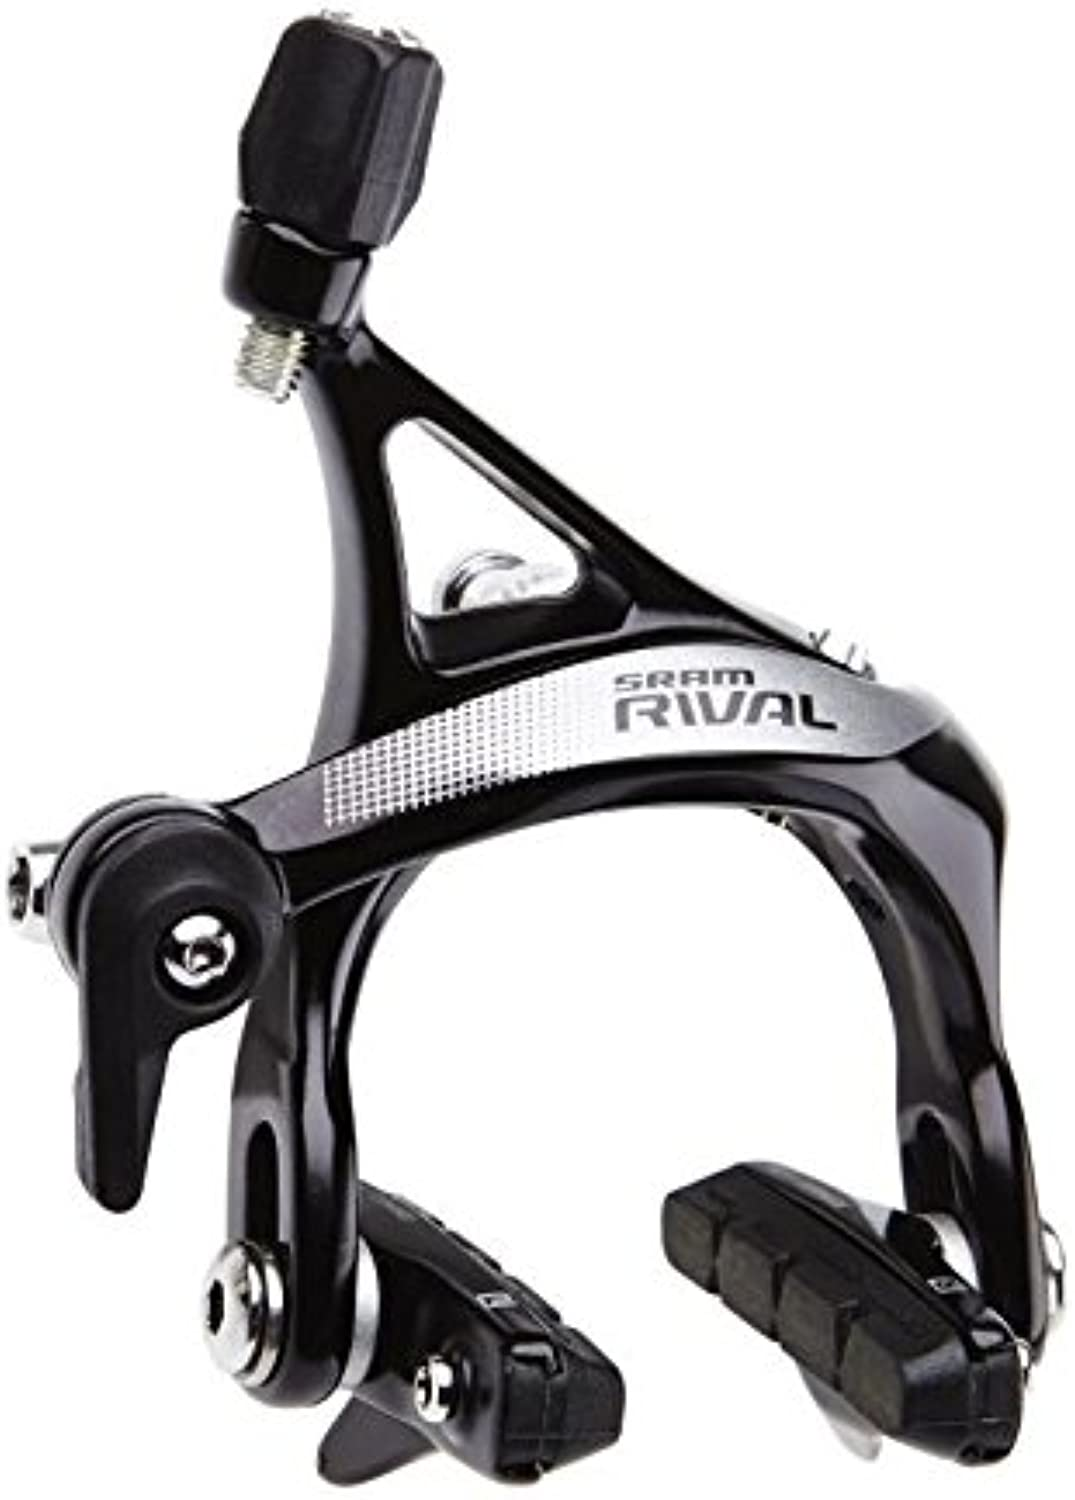 SRAM Rival 22 Road Bicycle Mechanical Brake